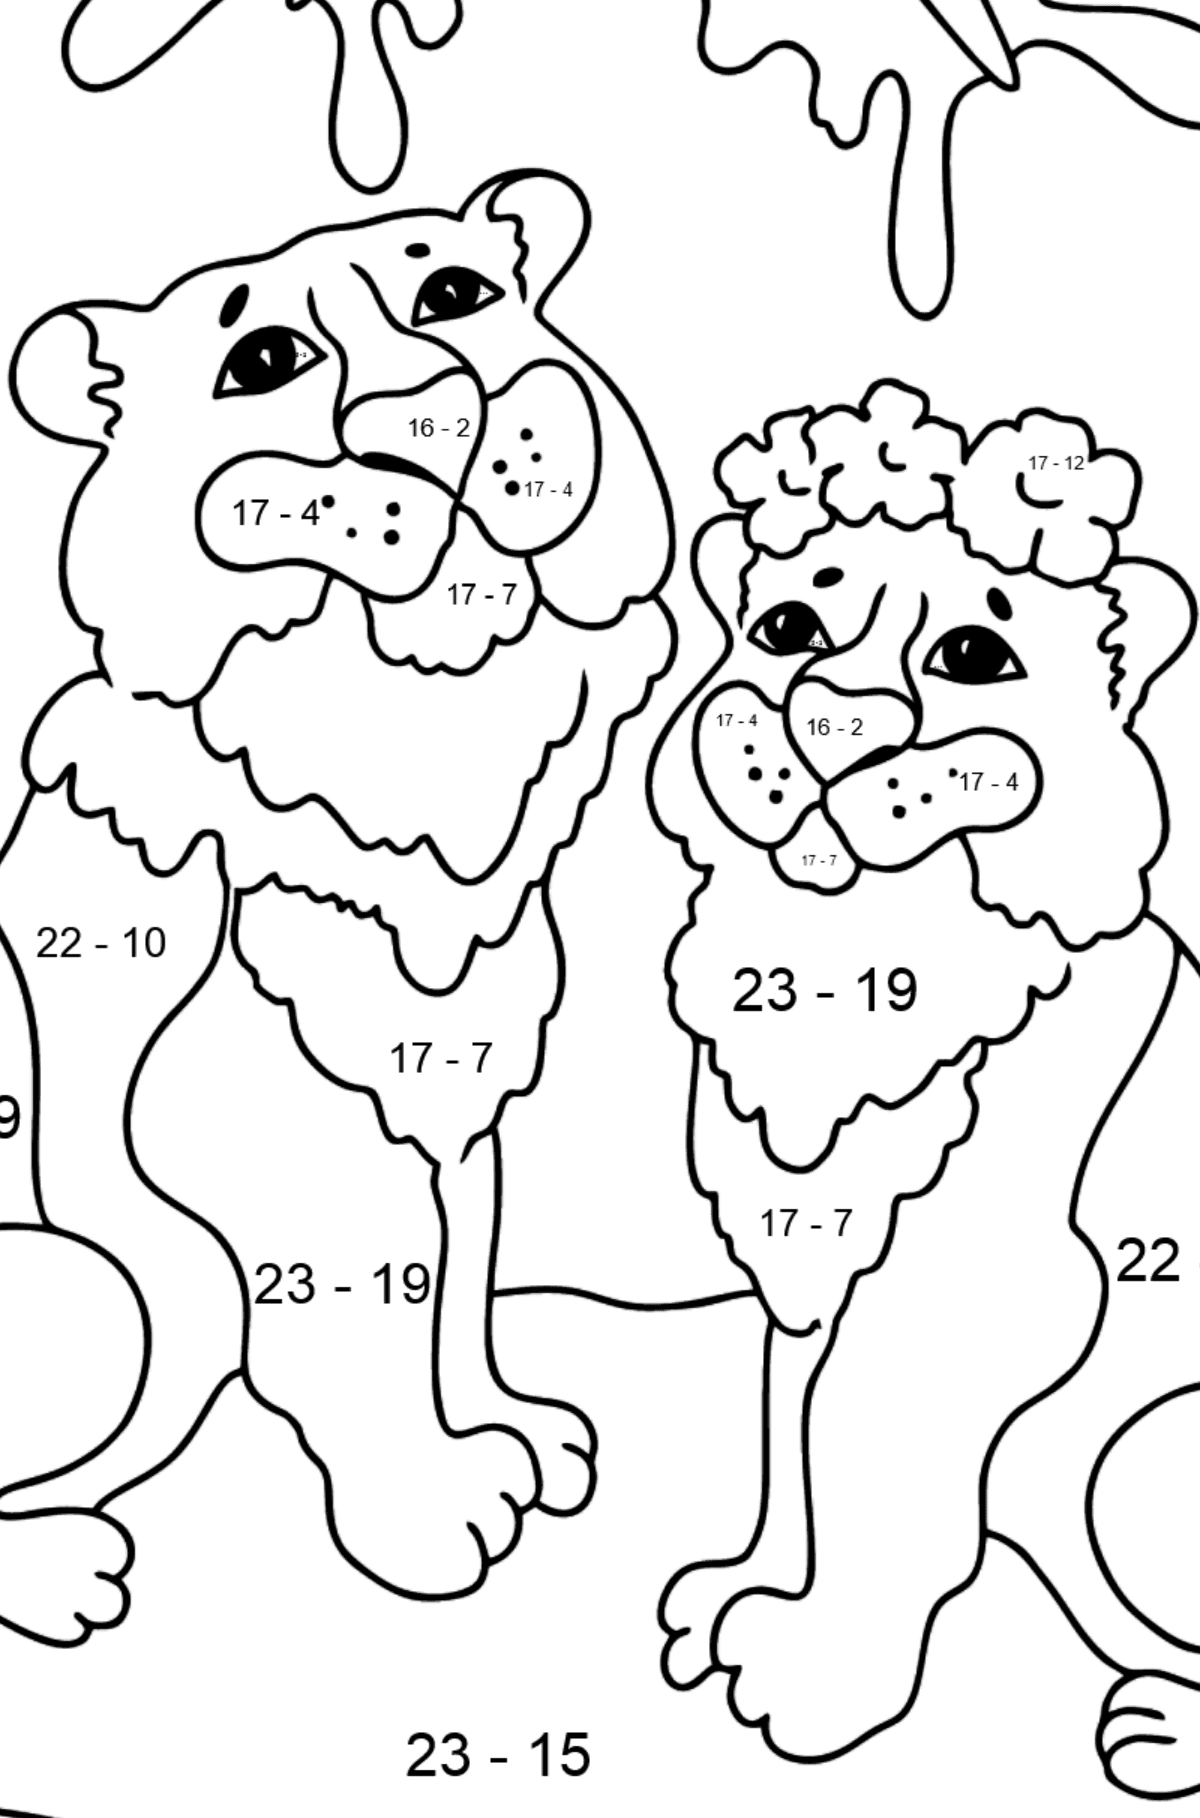 Coloring Page - Tigers with Butterflies - Math Coloring - Subtraction for Kids